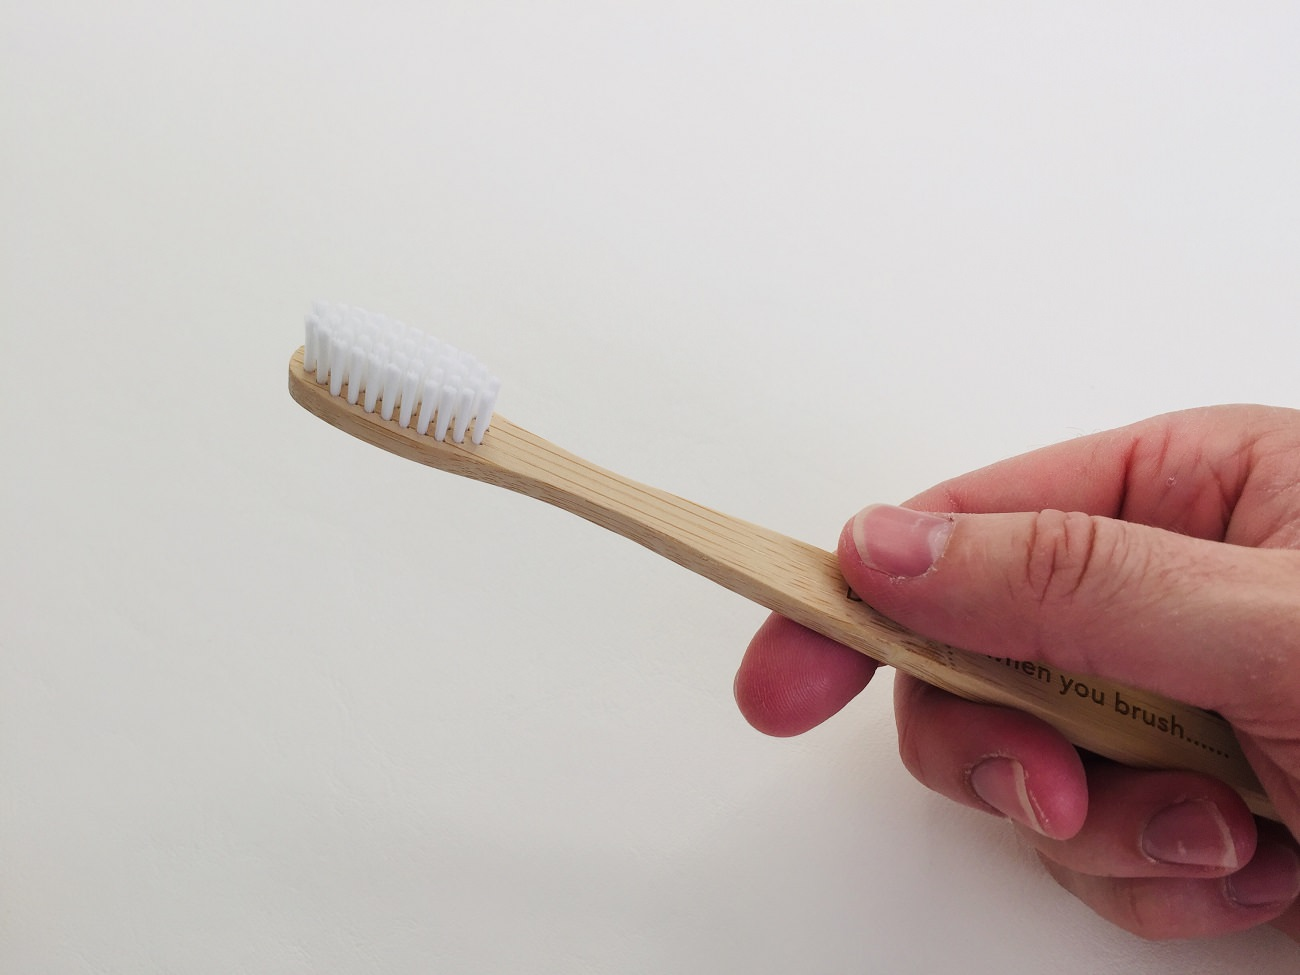 Holding the Flora & Fauna Bamboo Toothbrush